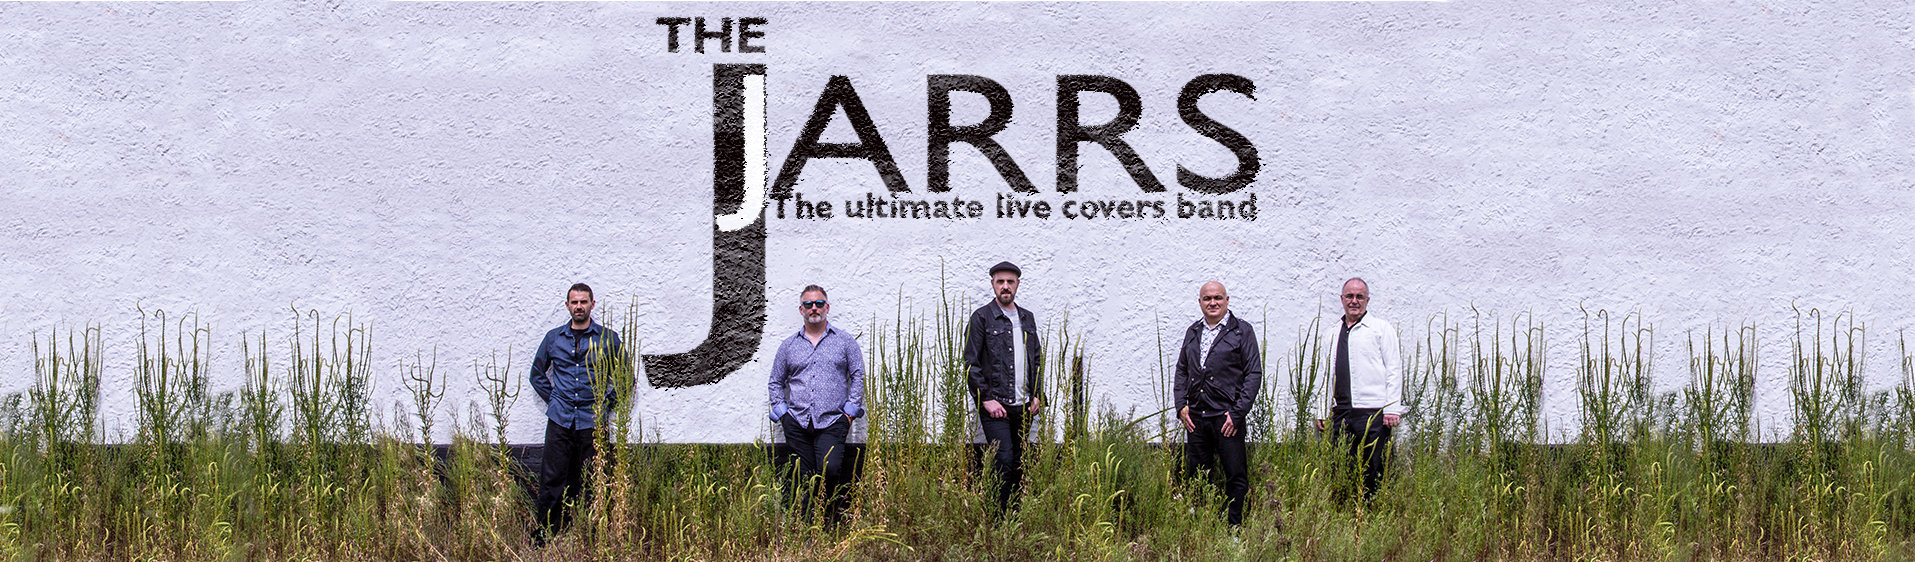 The Jjarrs - The Ultimate Live Covers Band - wedding band - party band - function band